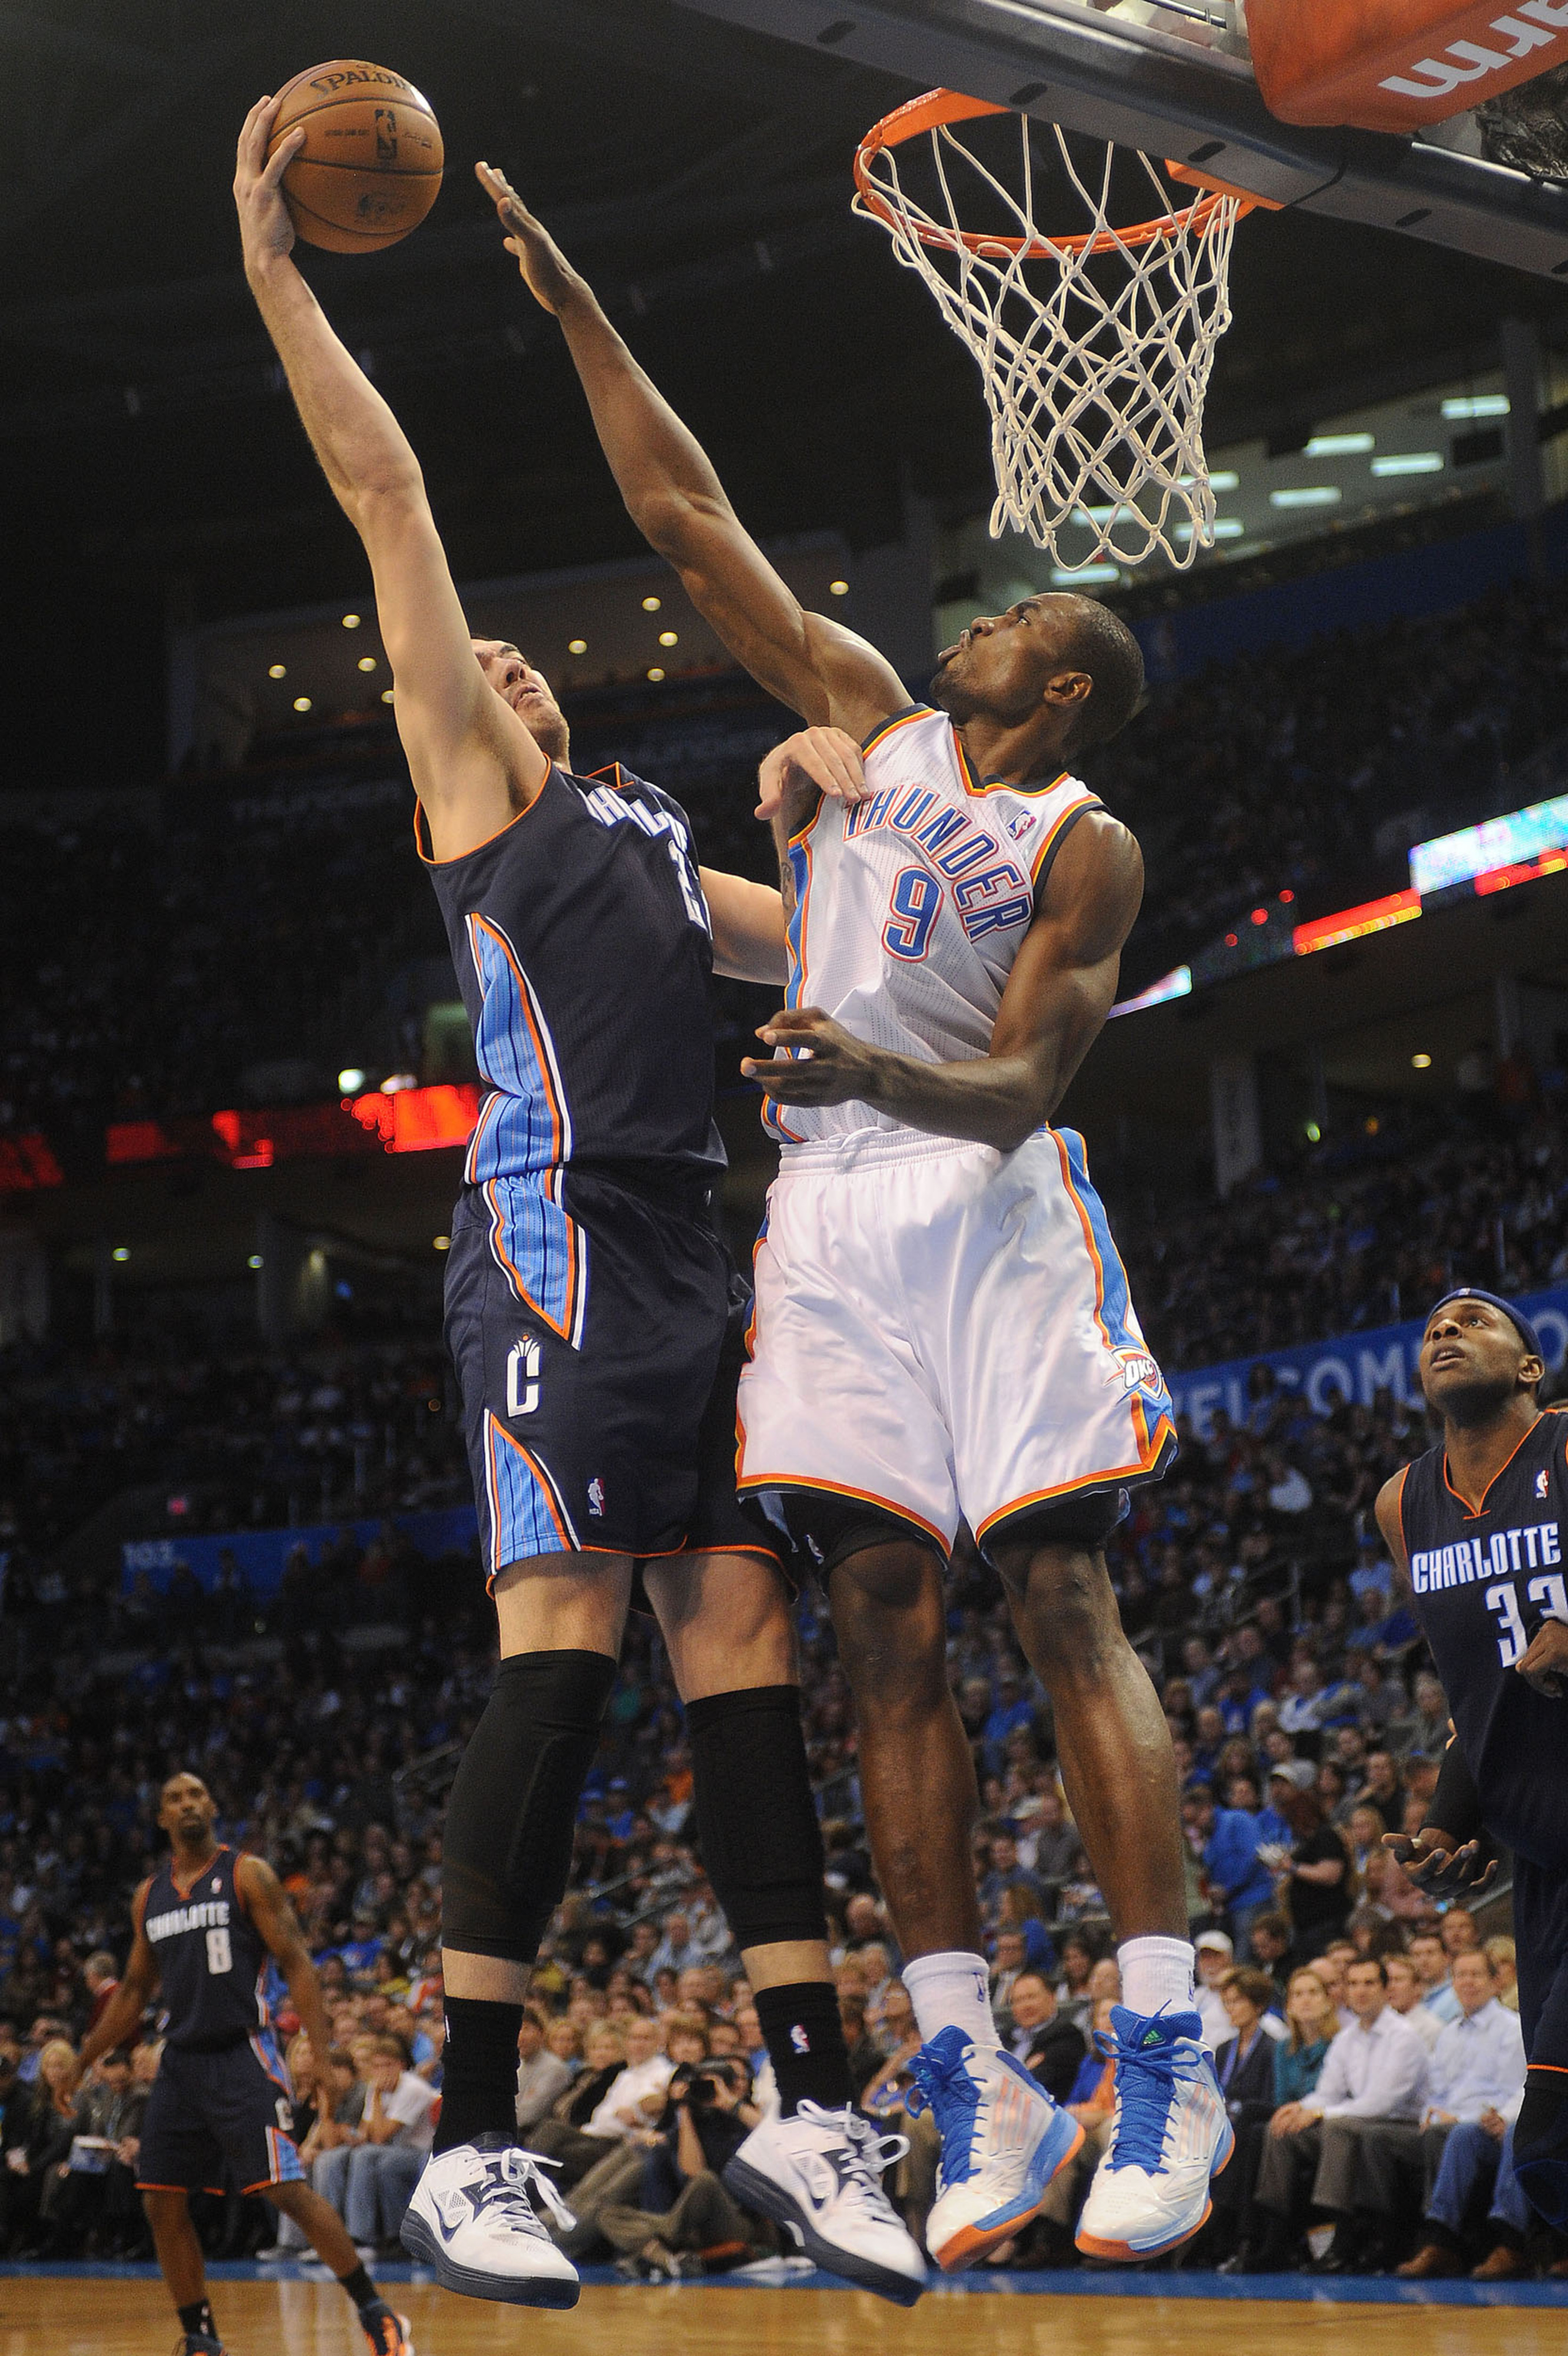 Former Thunder player Byron Mullens is defended by Thunder power forward Serge Ibaka.